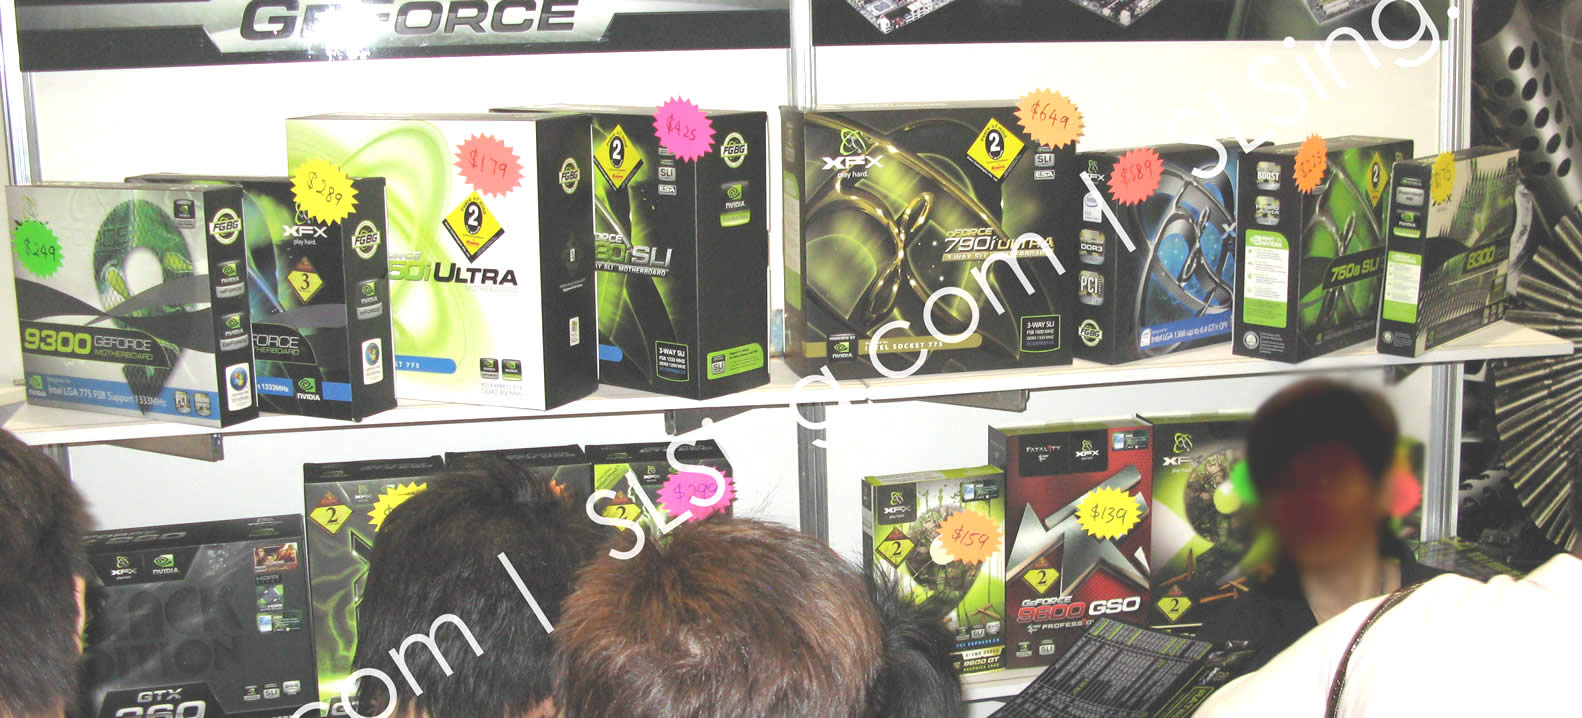 IT Show 2009 price list image brochure of Xfx Geforce (vr-zone Booest)